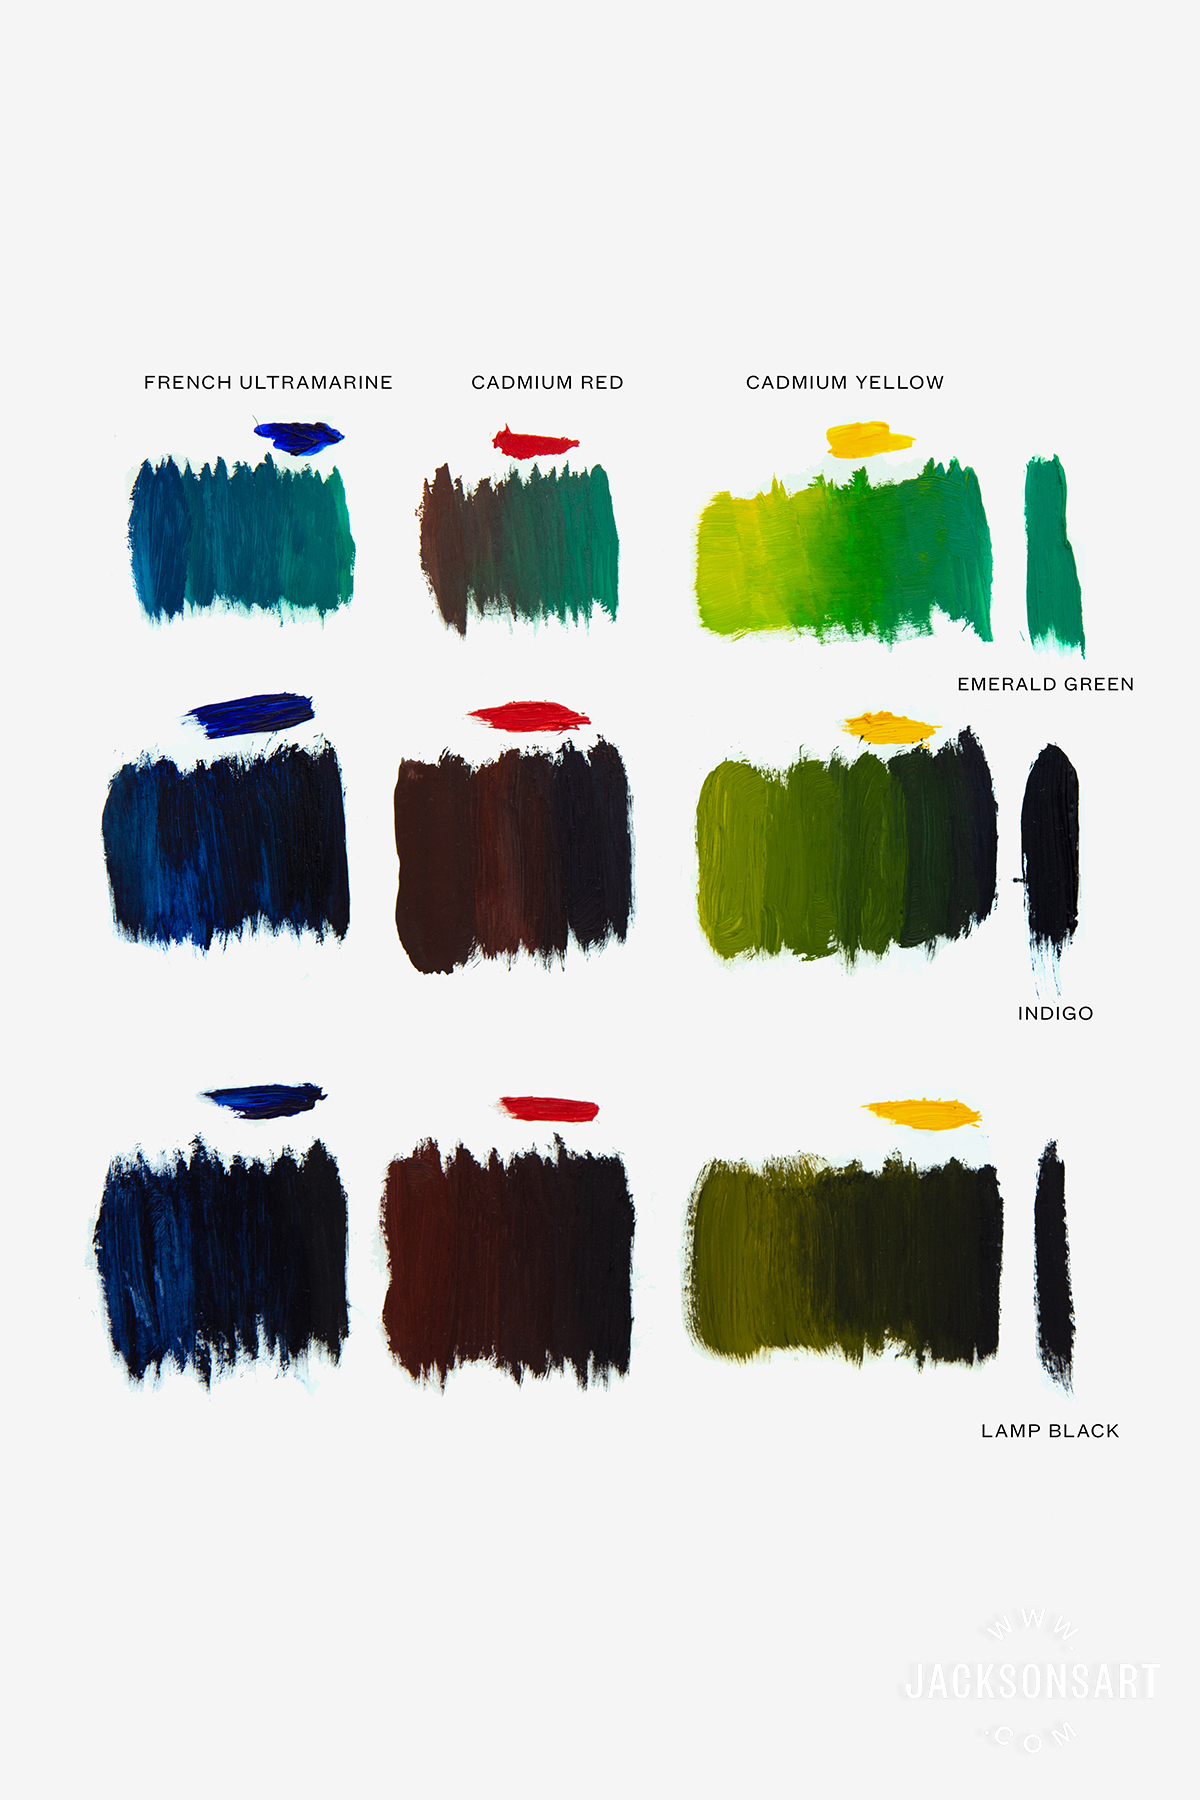 Comparing mixes of each new colour with core primaries